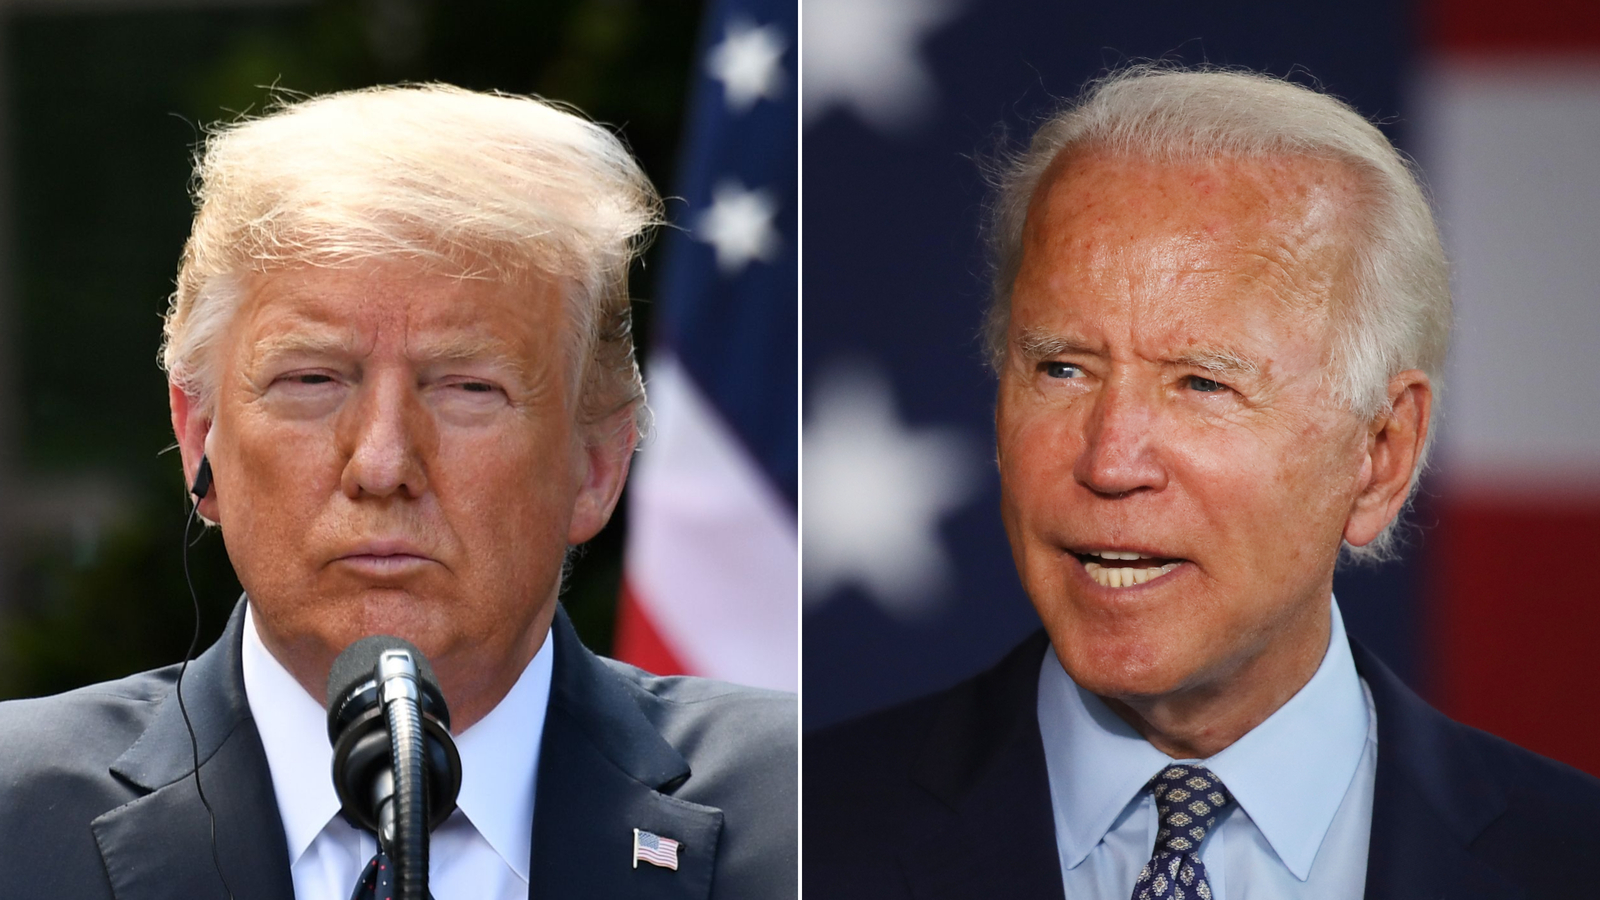 Trump's campaign returns to TV airwaves with ads attacking Joe Biden